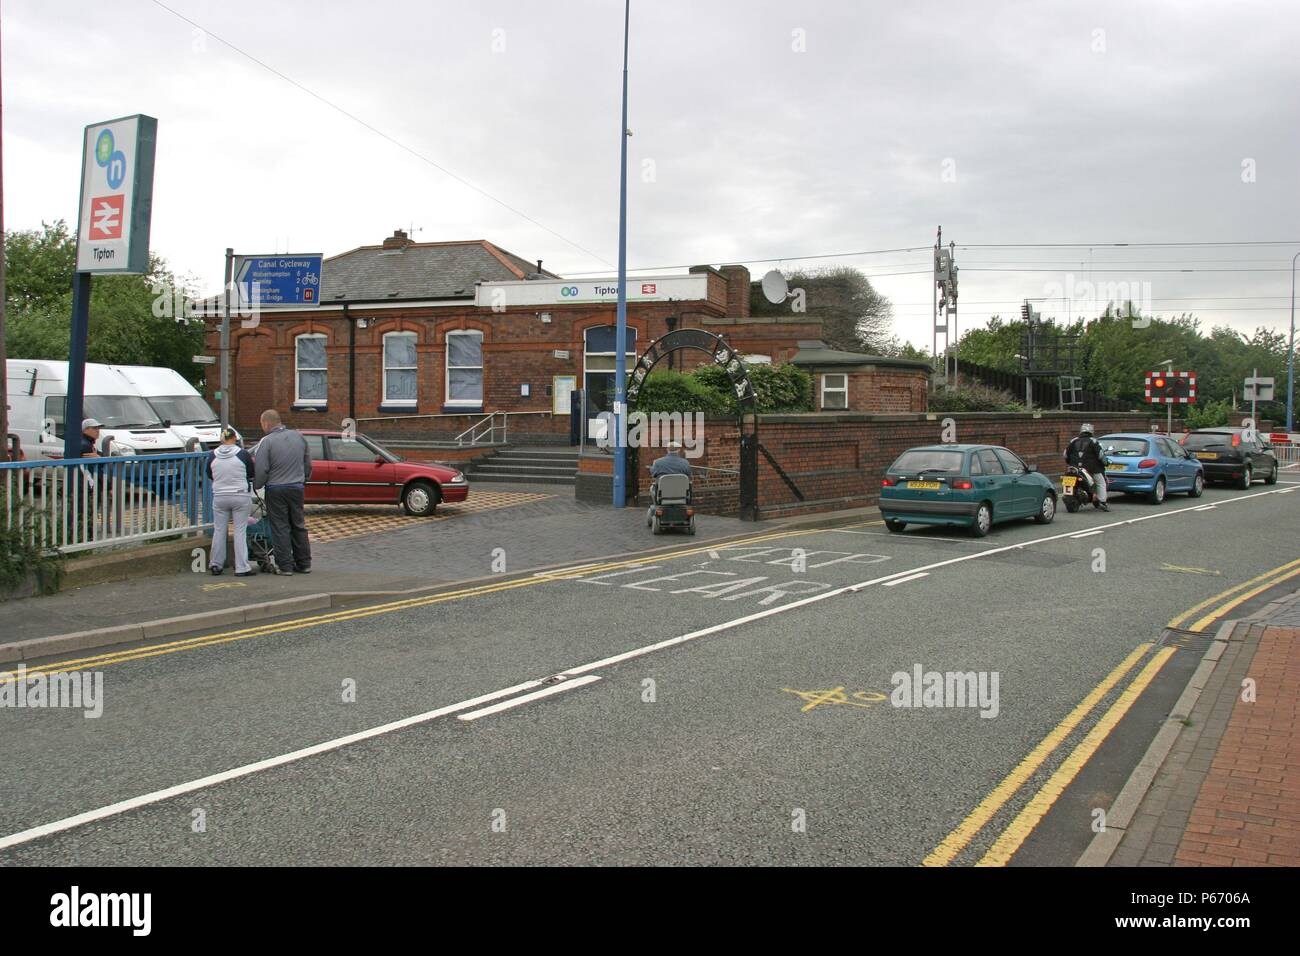 Station frontage and level crossing at Tipton station, West Midlands. 2007 - Stock Image